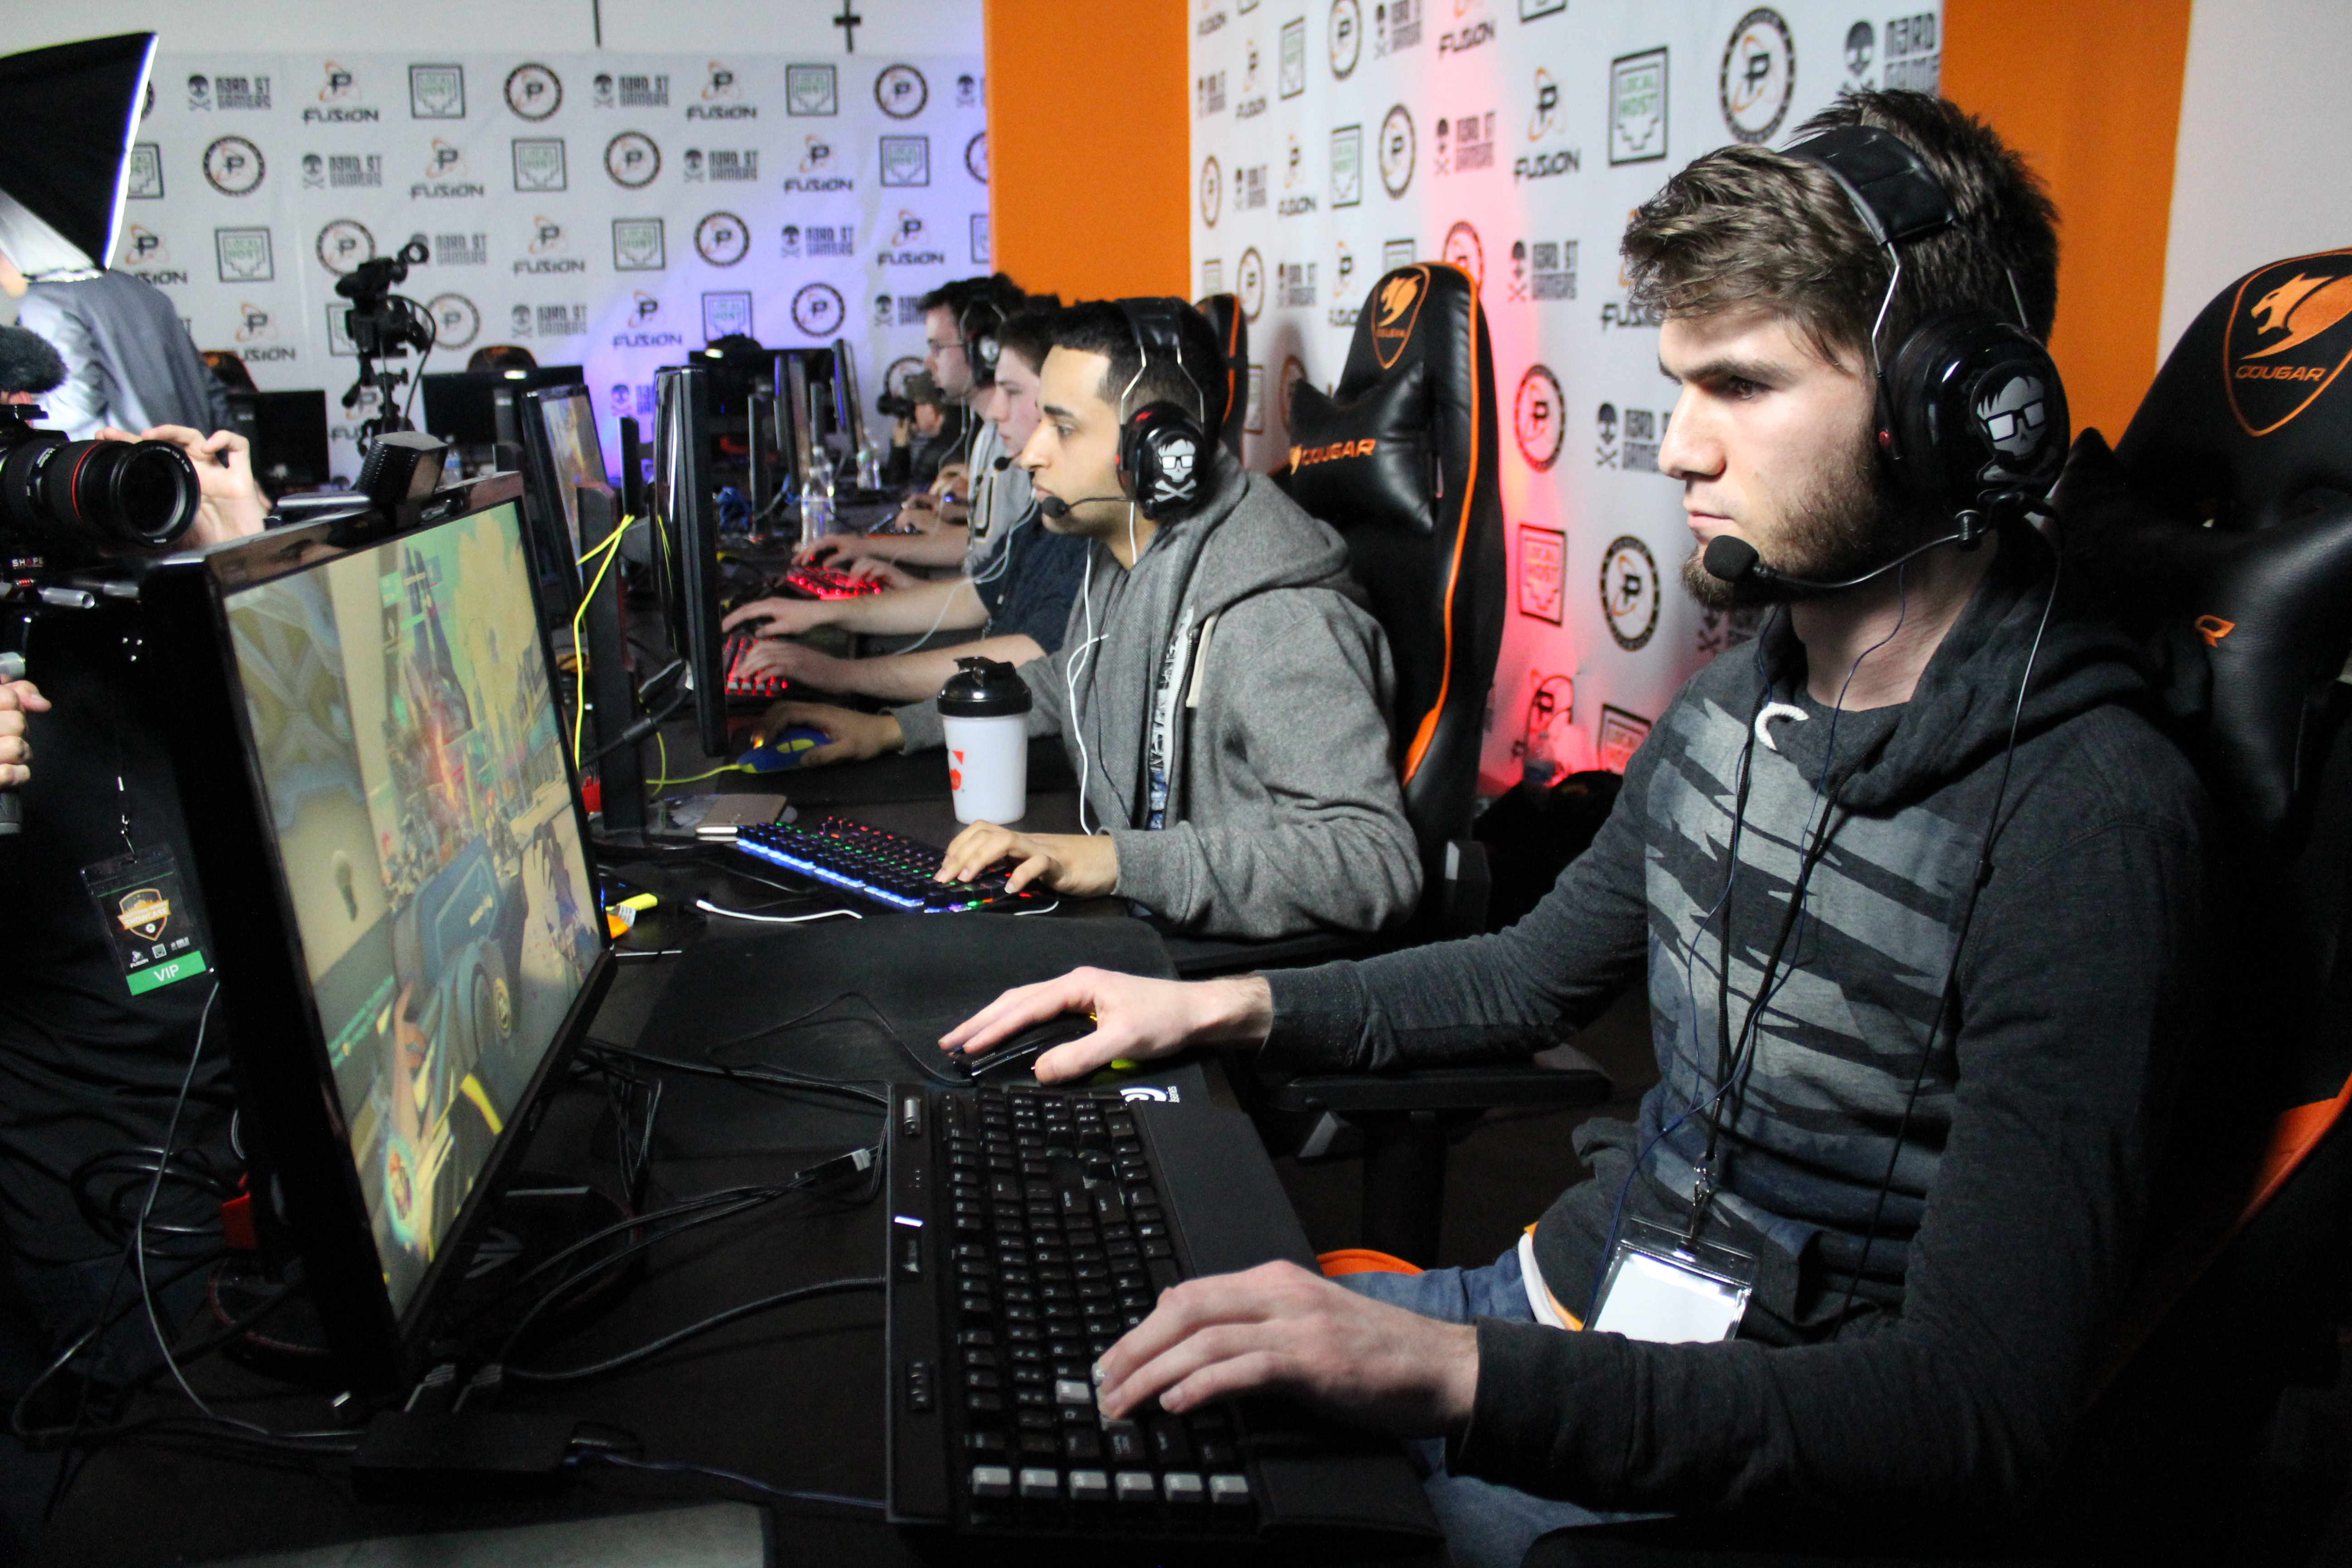 Players had the chance to have their gameplay streamed live to hundreds of people.